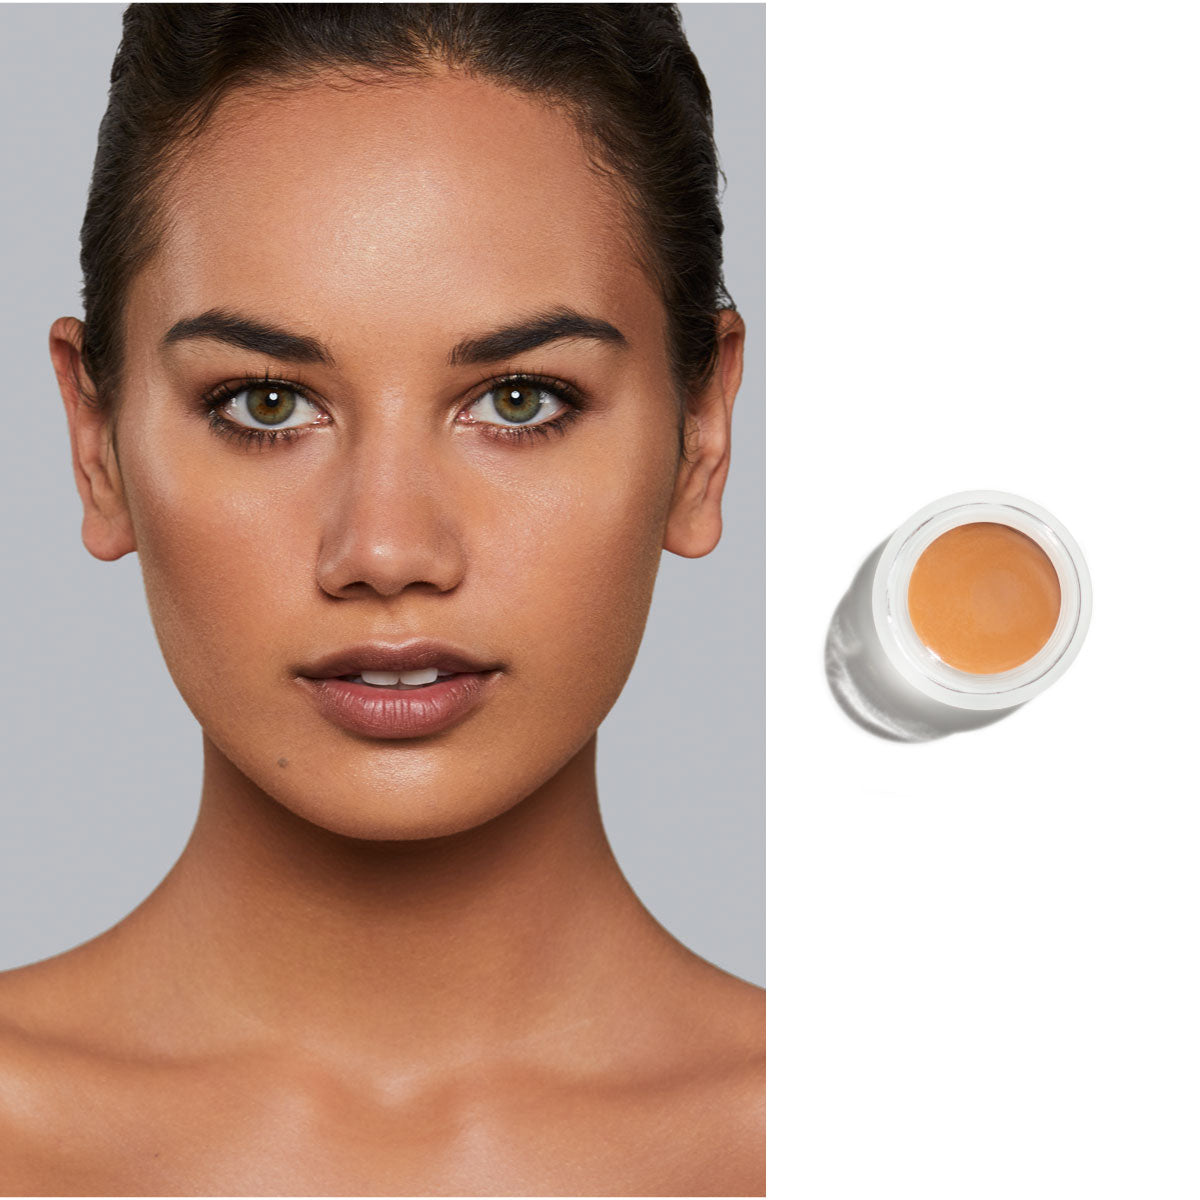 Concealer/Foundation 4.0